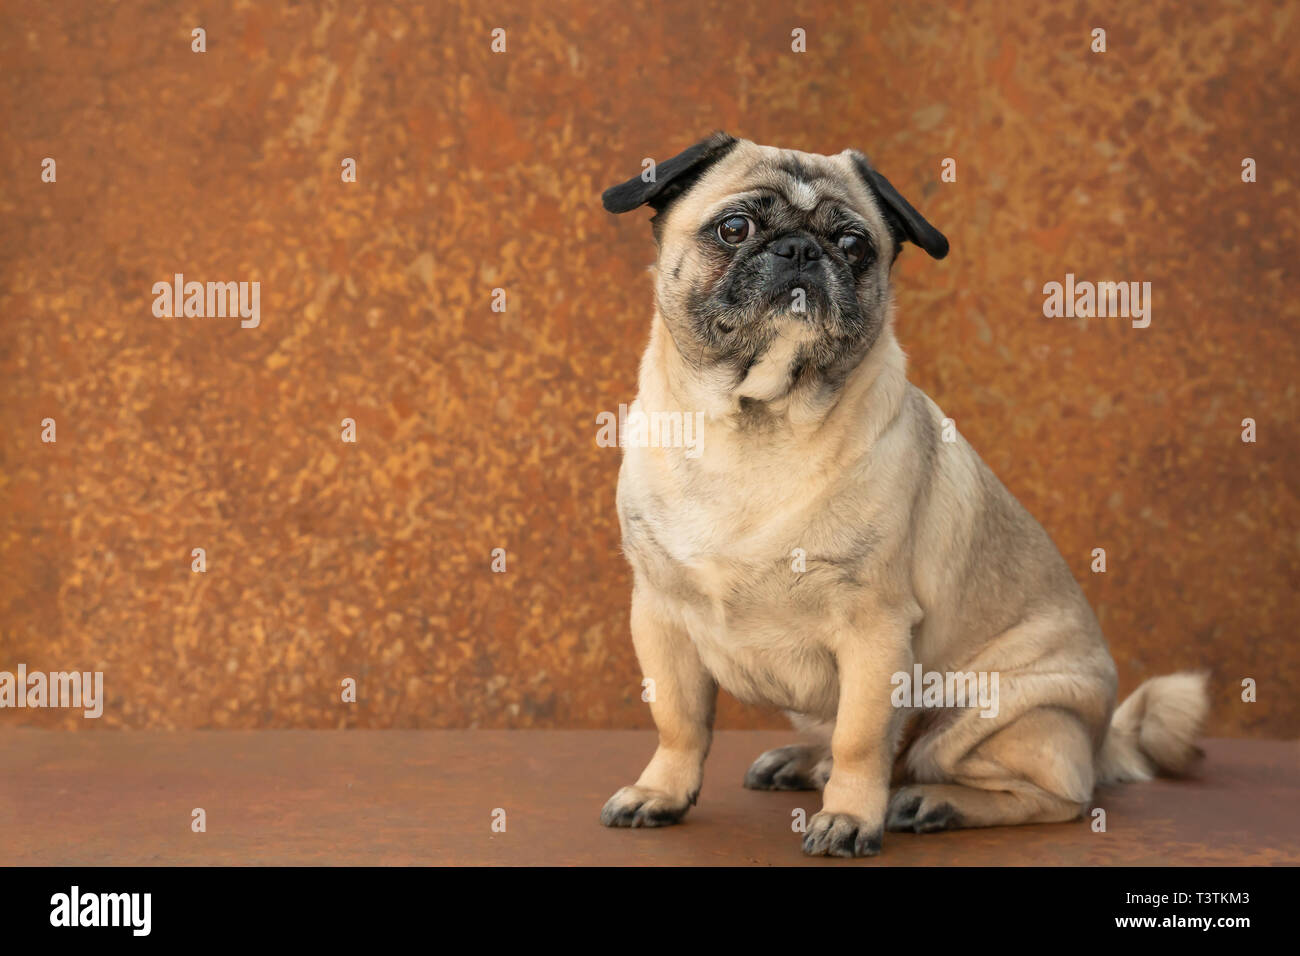 A little pug sits in front of rusty stainless steel. He looks interested with big eyes to a point outside the camera. Lots of copy space. - Stock Image